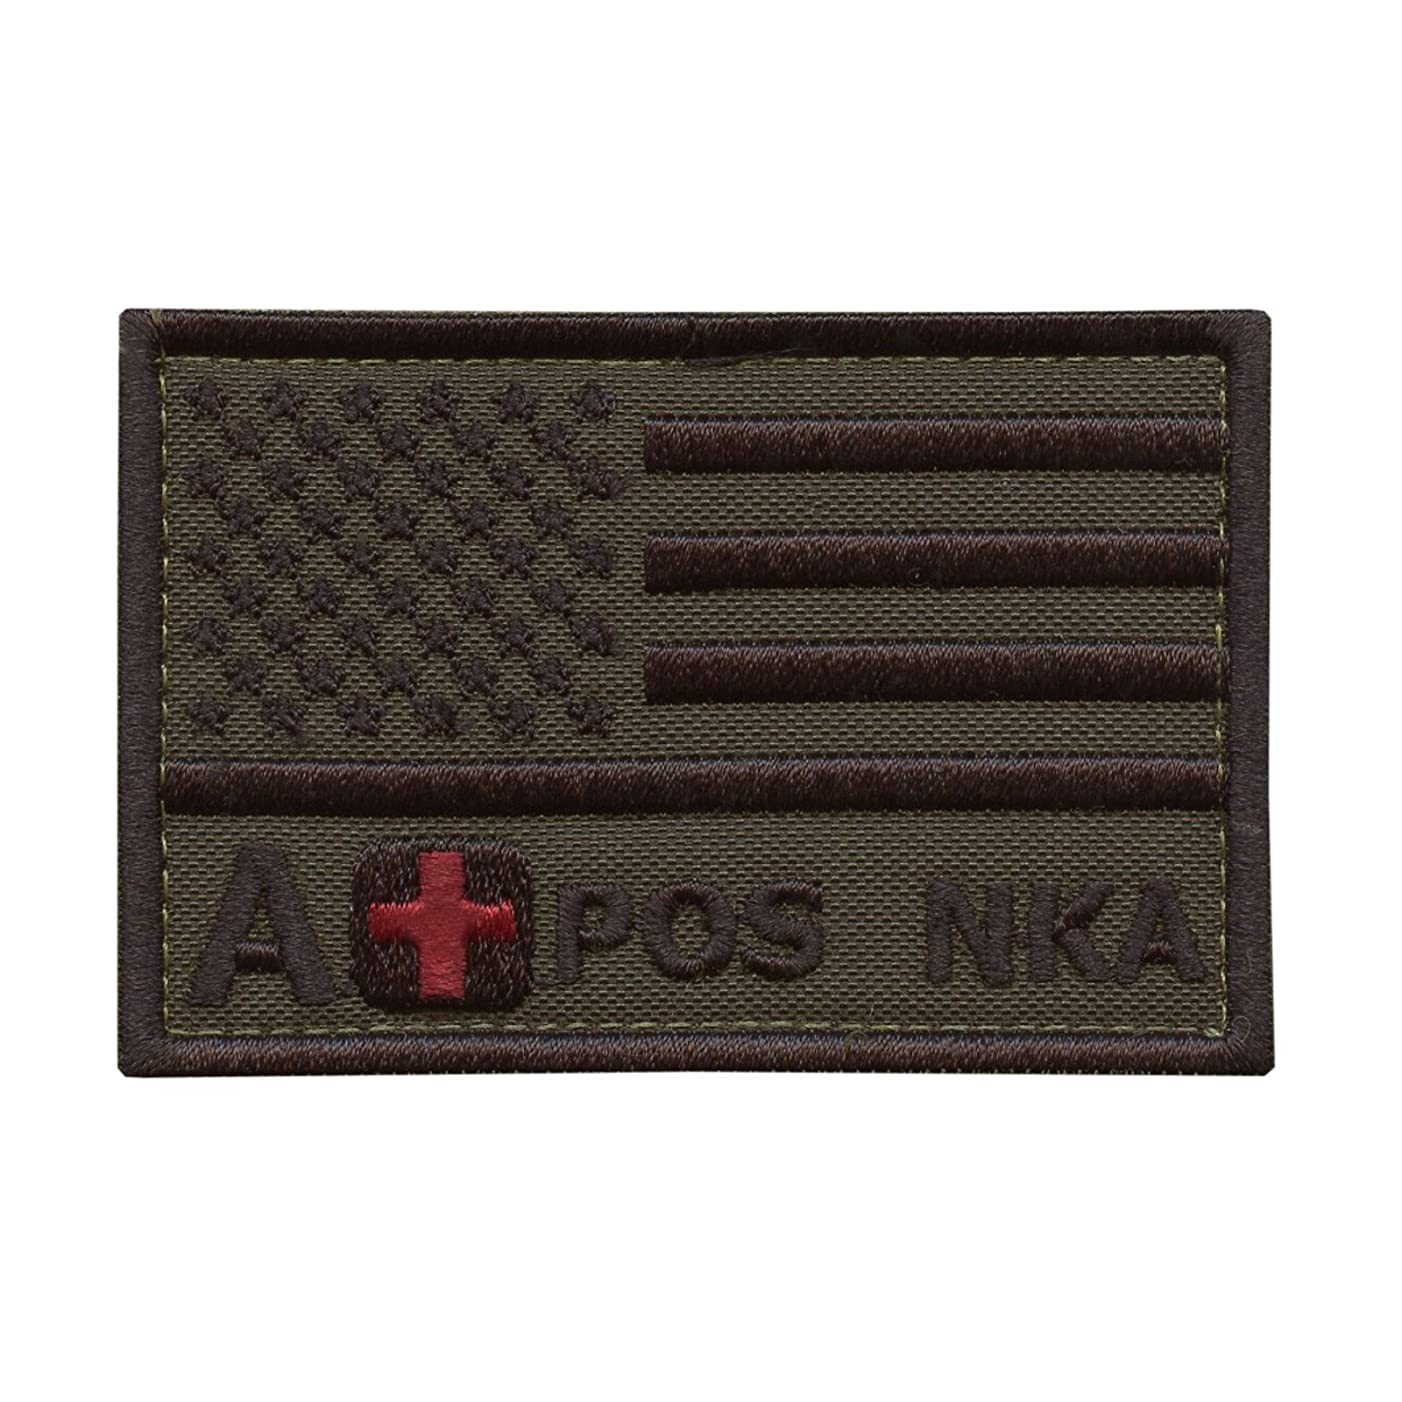 LEGEEON A POS A+ NKA Blood Type Olive Drab Green USA Flag Embroidered Fastener Patch